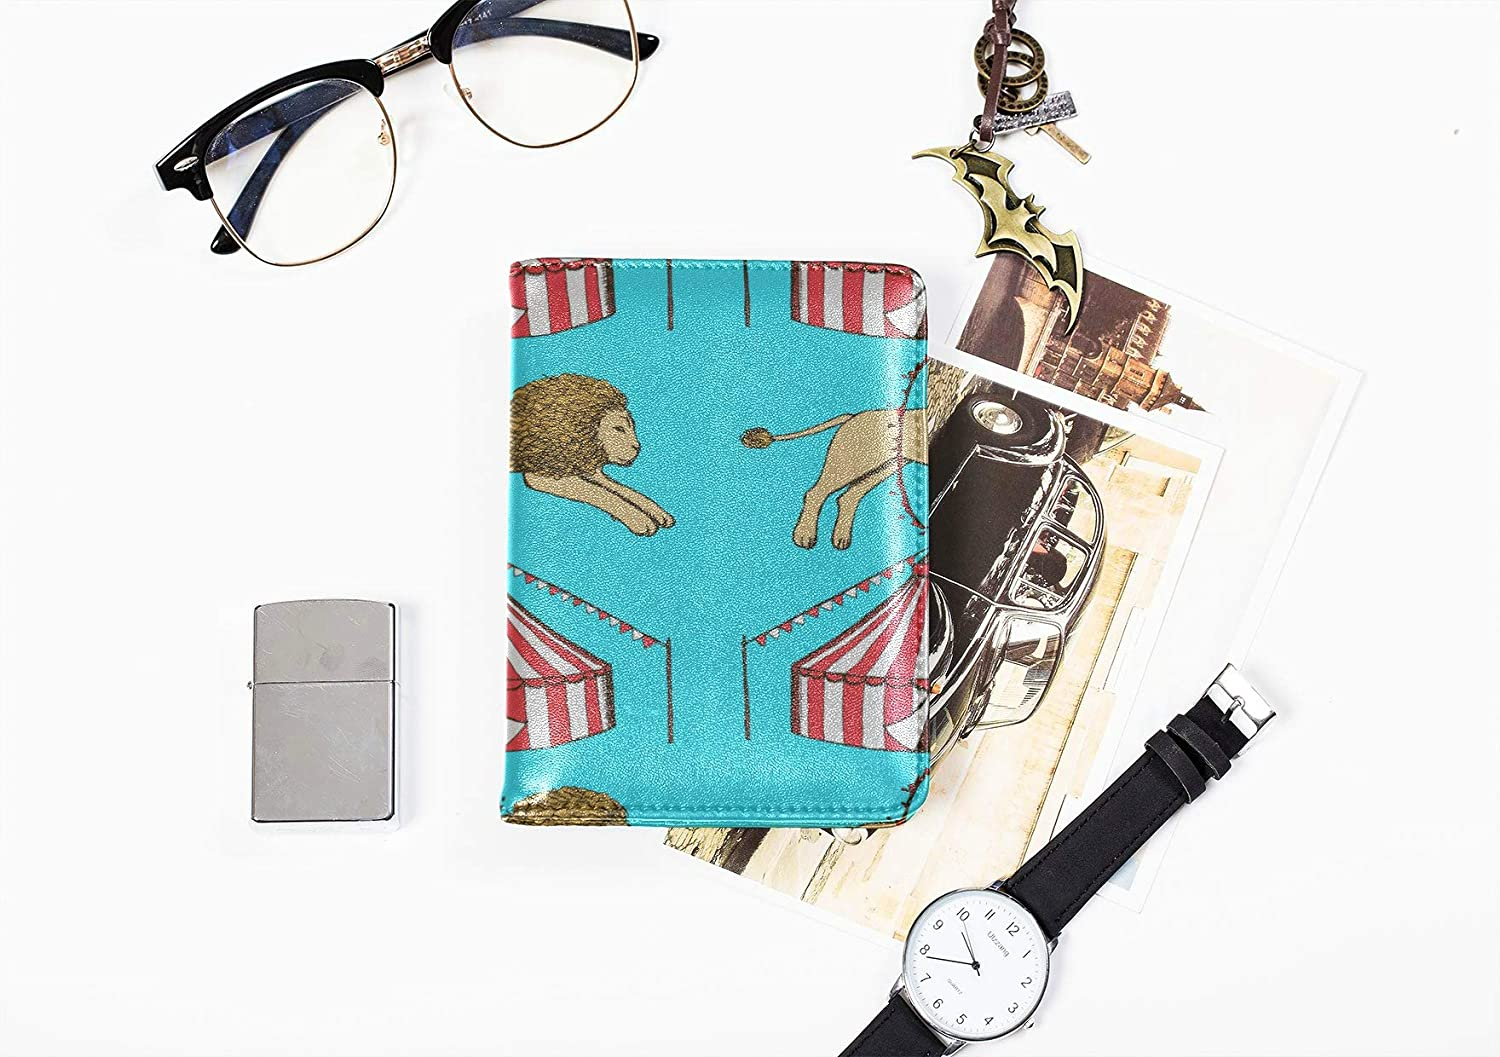 Mens Leather Passport Case Cute Cartoon Fun Childlike Hula Hoop Passport Case Waterproof Multi Purpose Print Small Passport Cover Travel Wallets For Unisex 5.51x4.37 Inch